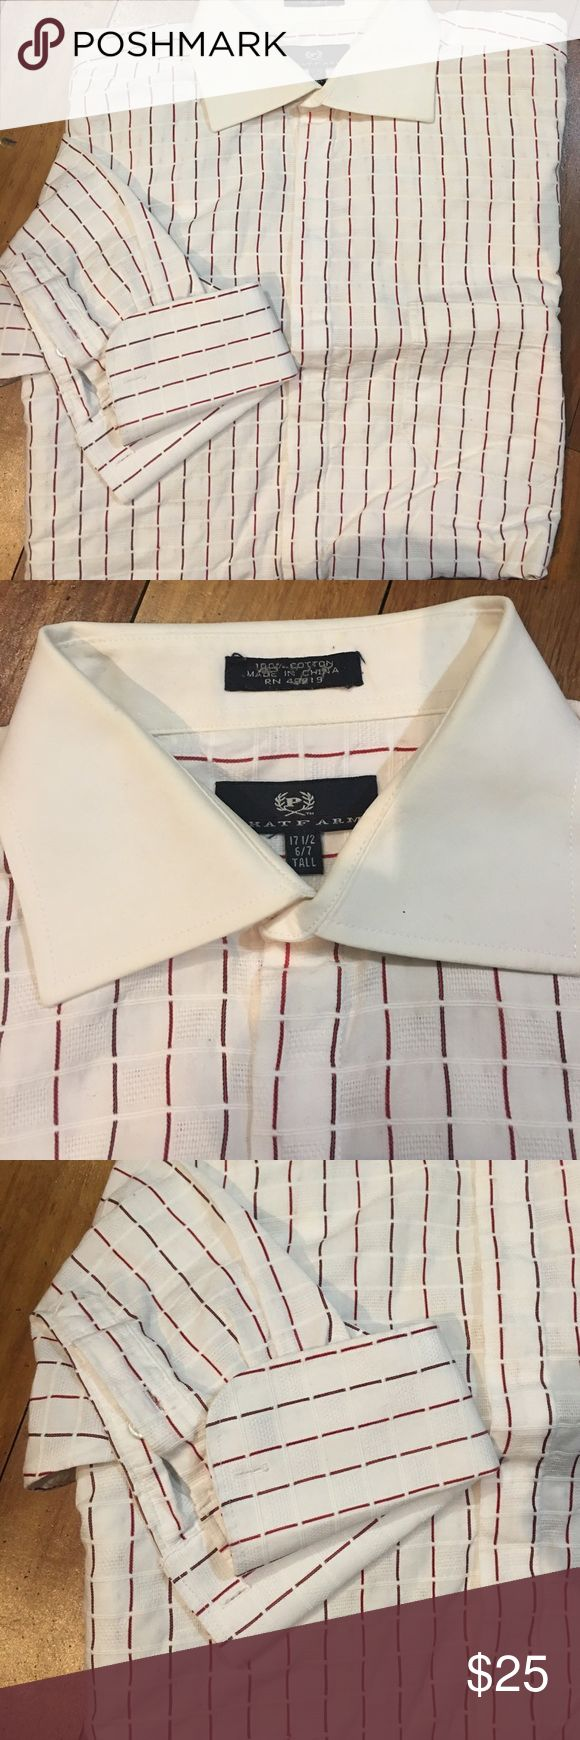 White w burgundy stripe French cuff shirt 17.5 6/7 White with burgundy striped button down shirt French cuffs with white contrasting collar preowned excellent condition 17.5 6/7 tall Phatfarm Shirts Dress Shirts